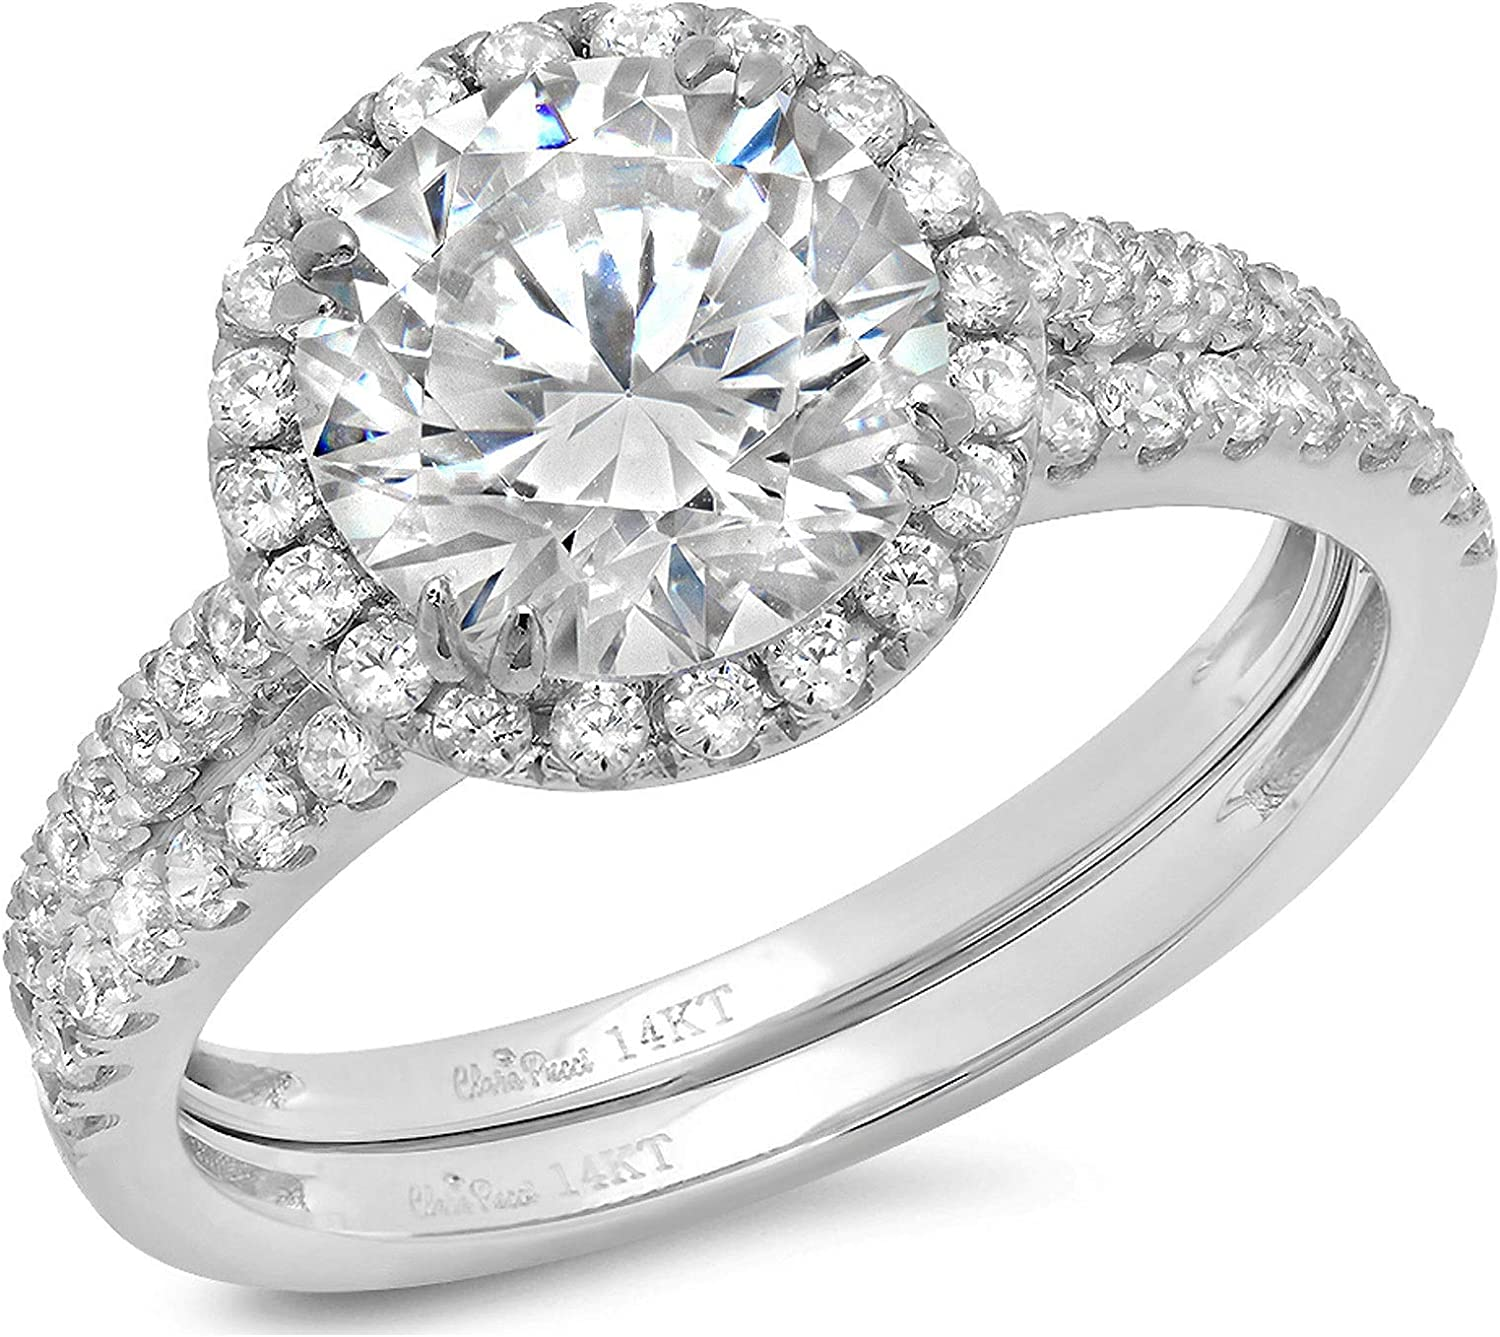 2.72ct Round Cut Halo Pave Solitaire Accent Lab Created White Sapphire & Simulated Diamond Engagement Promise Statement Anniversary Bridal Wedding Ring Band set Real Solid 14k White Gold